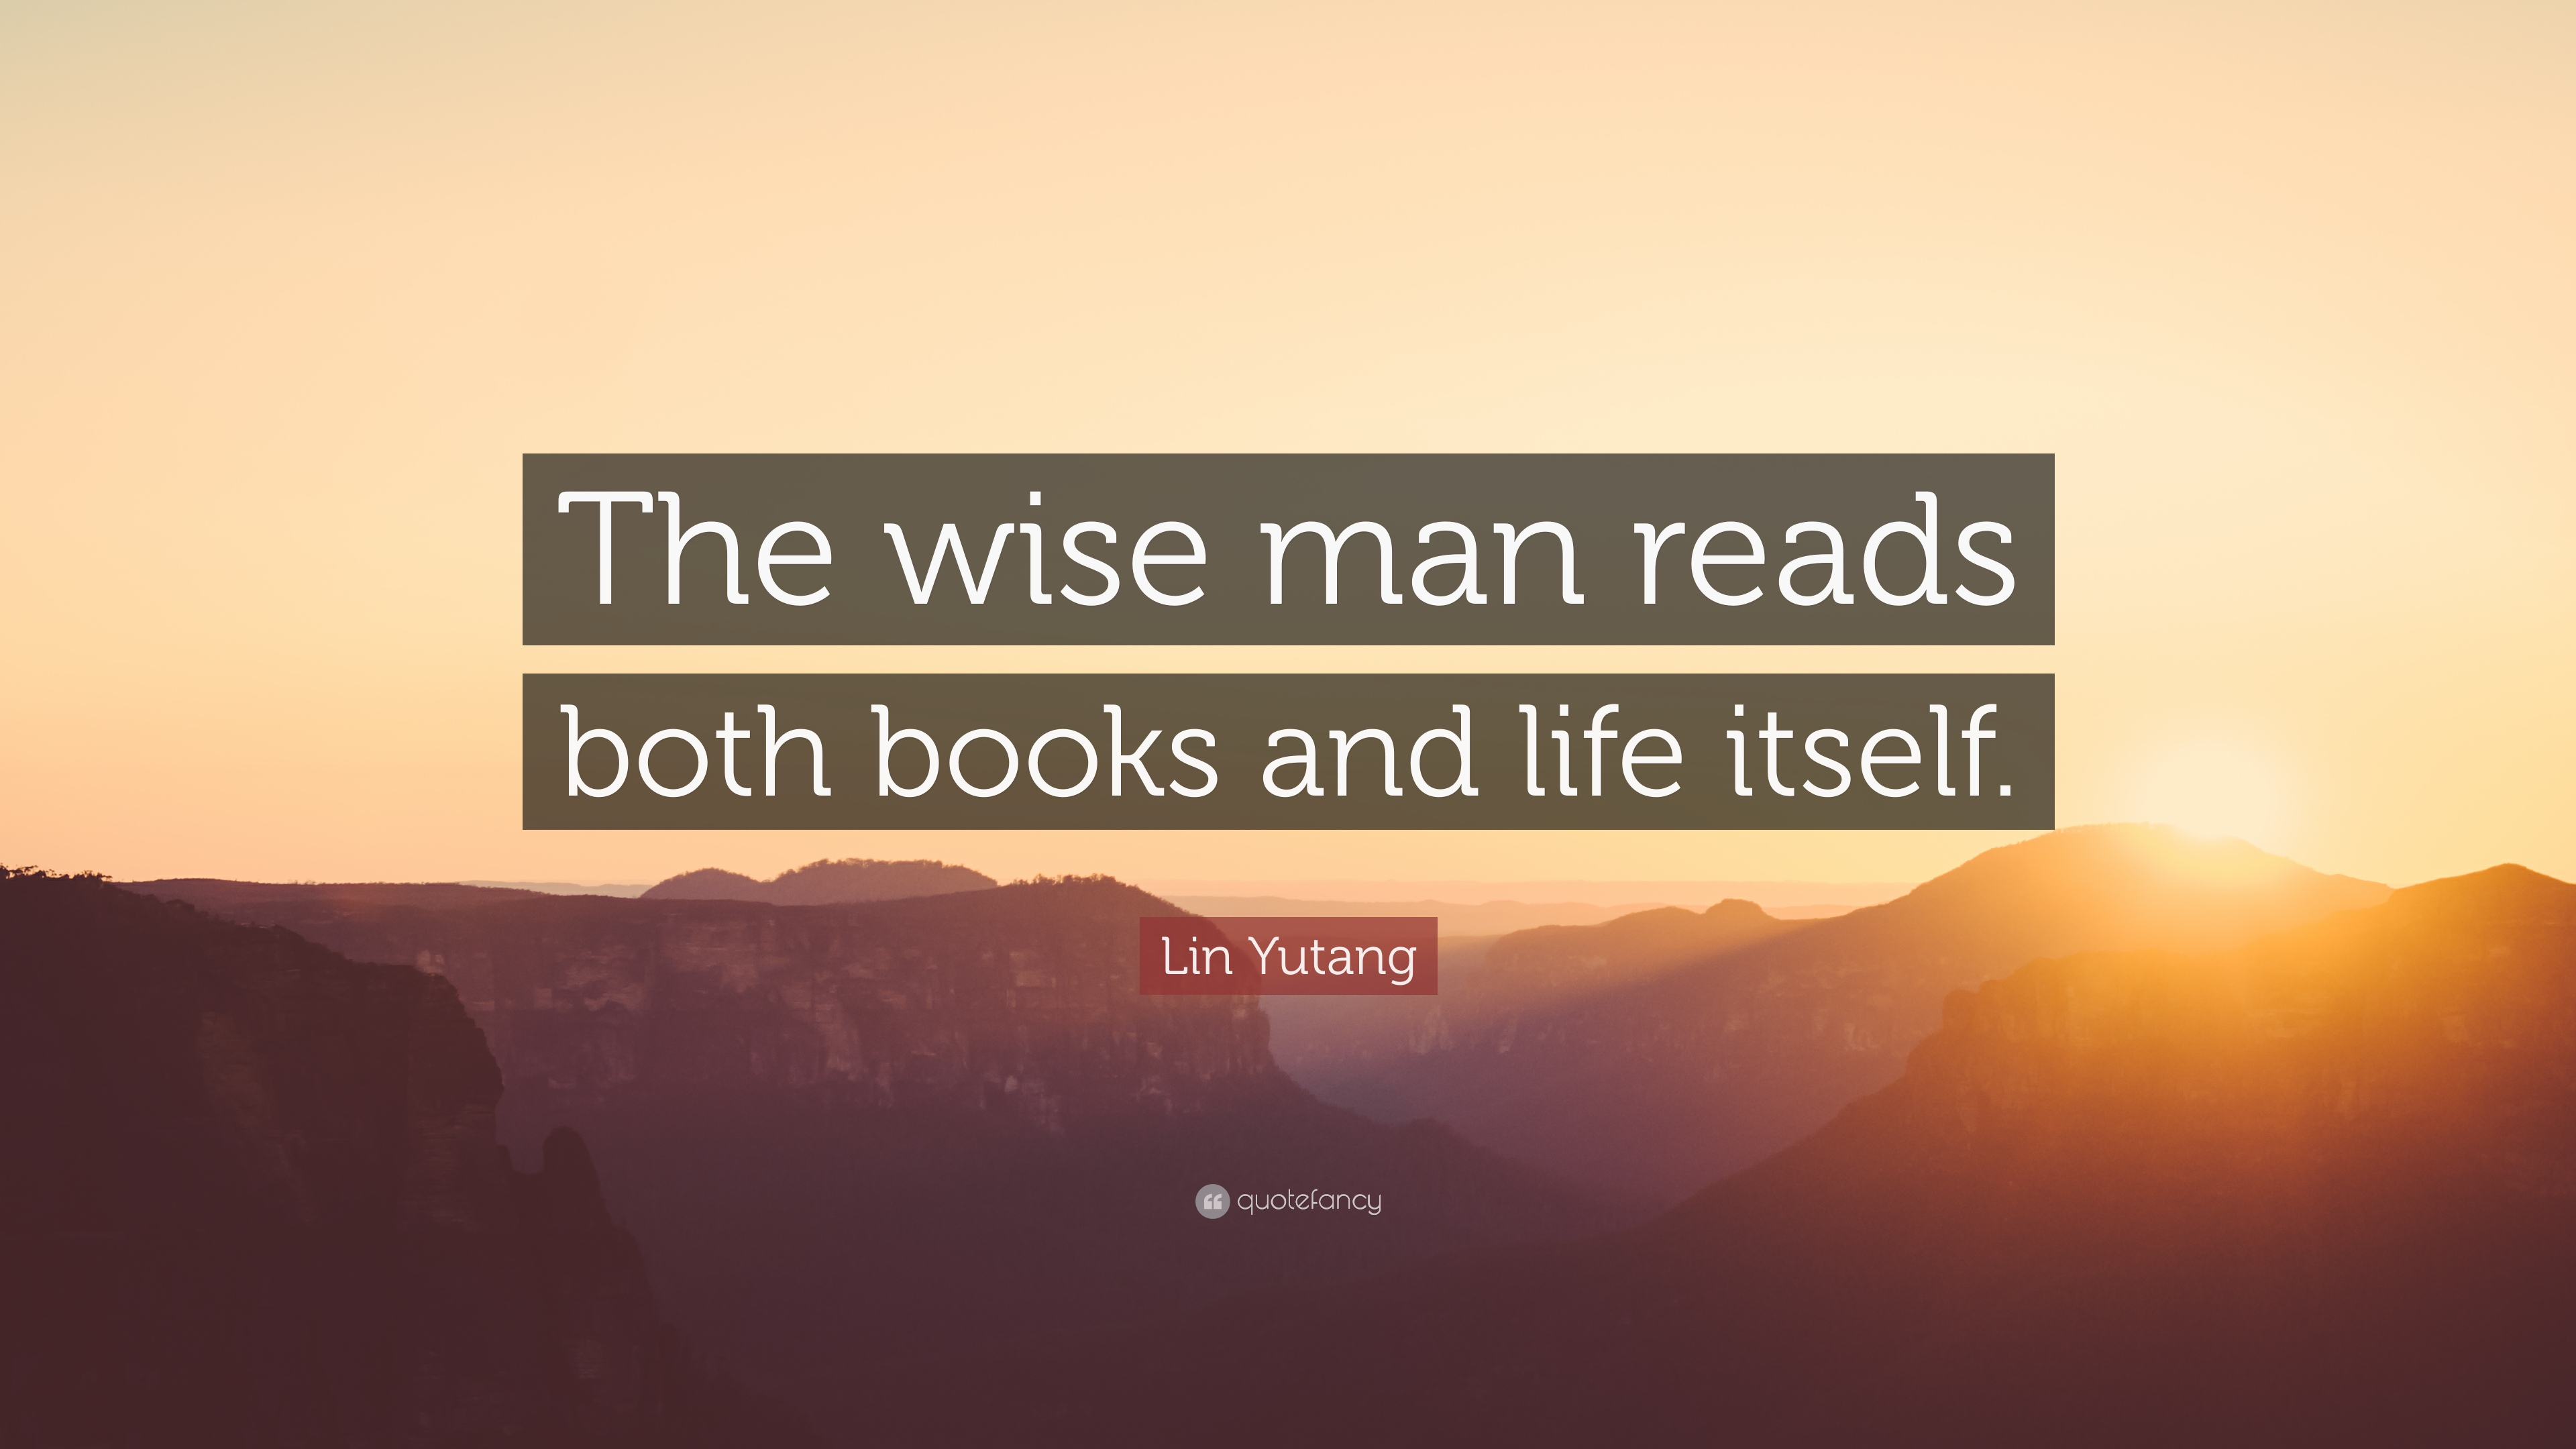 Lin Yutang Quote: U201cThe Wise Man Reads Both Books And Life Itself.u201d